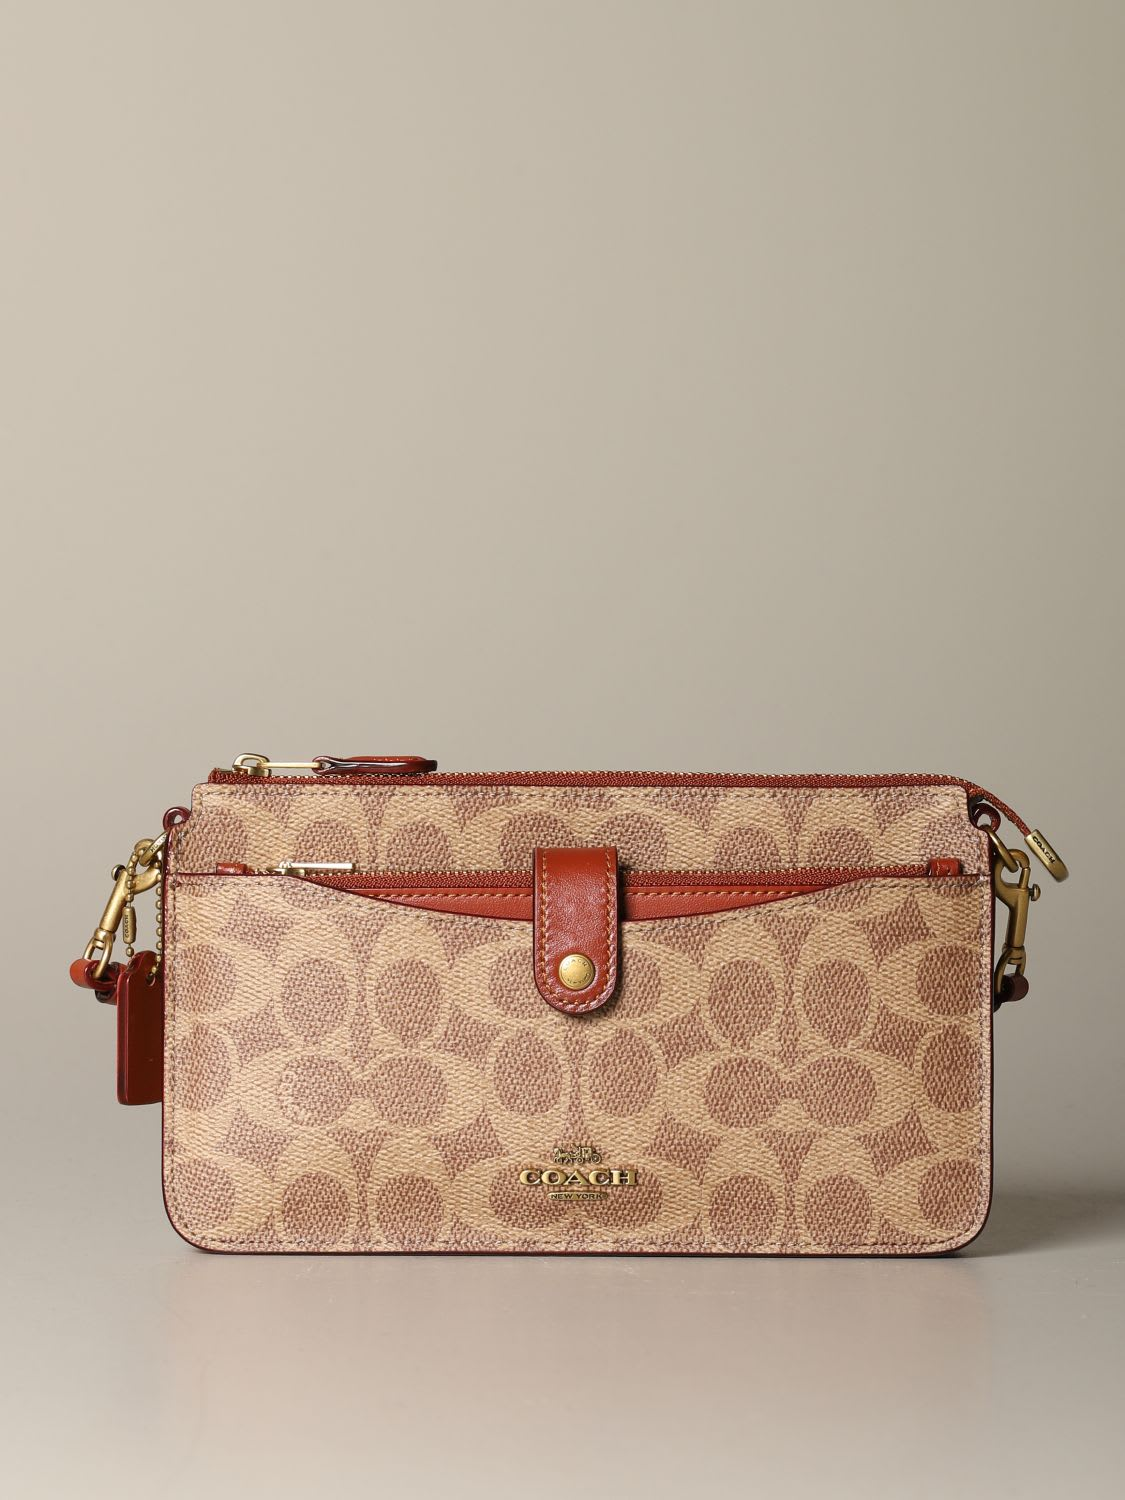 Coach Mini Bag Noa Coach Shoulder Bag In Leather And Coated Canvas With Logo